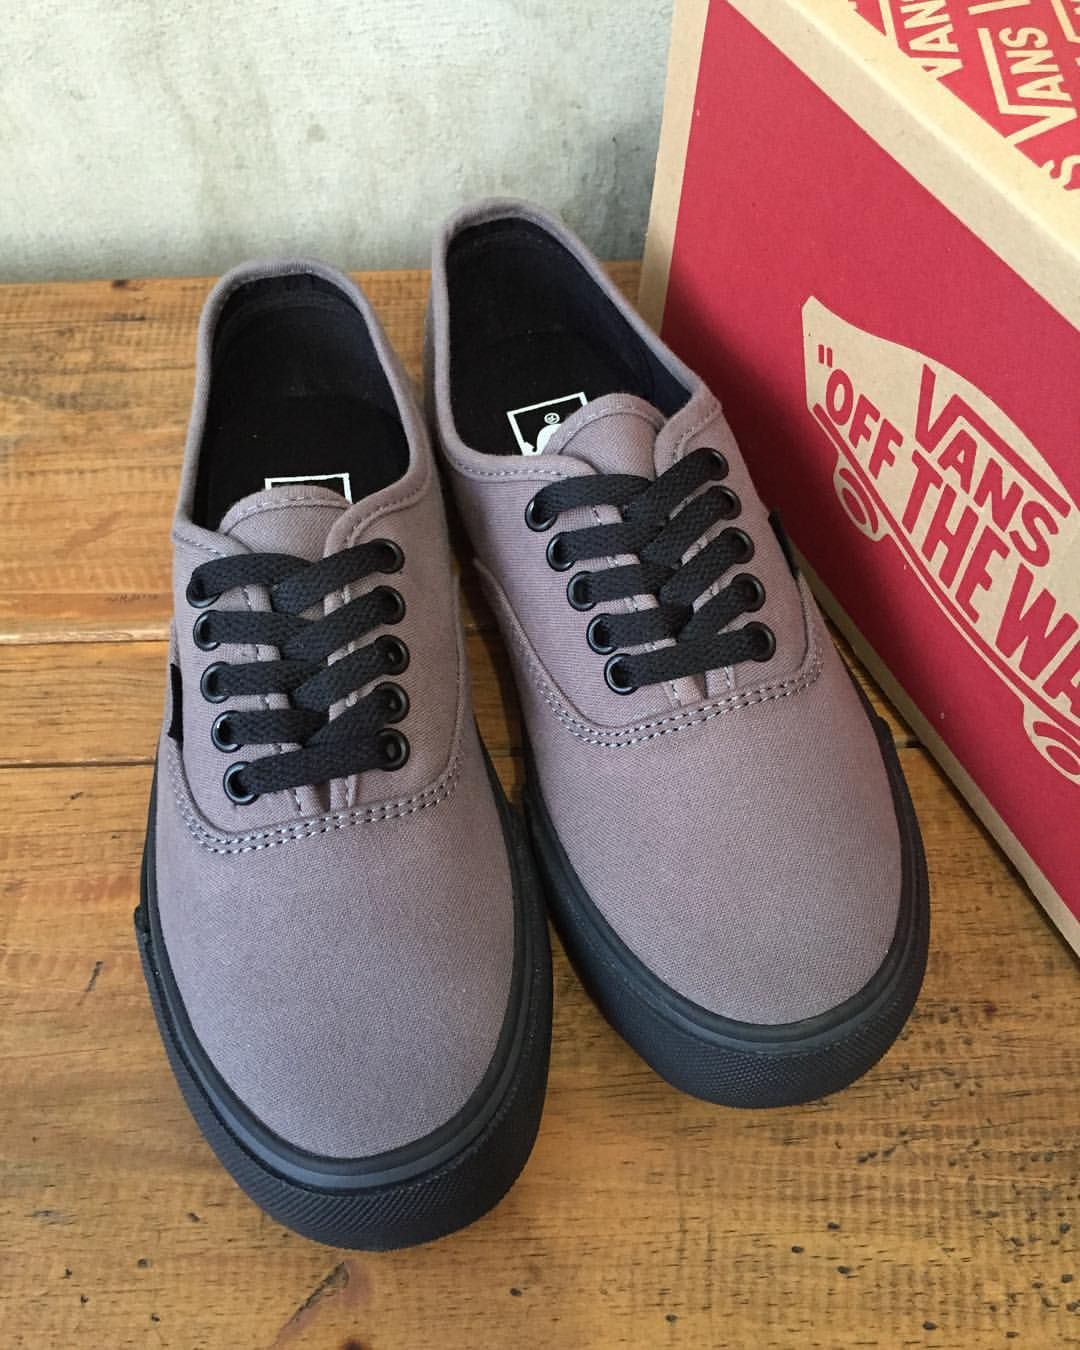 521668c9ba11d7 Vans authentic grey black Size 7